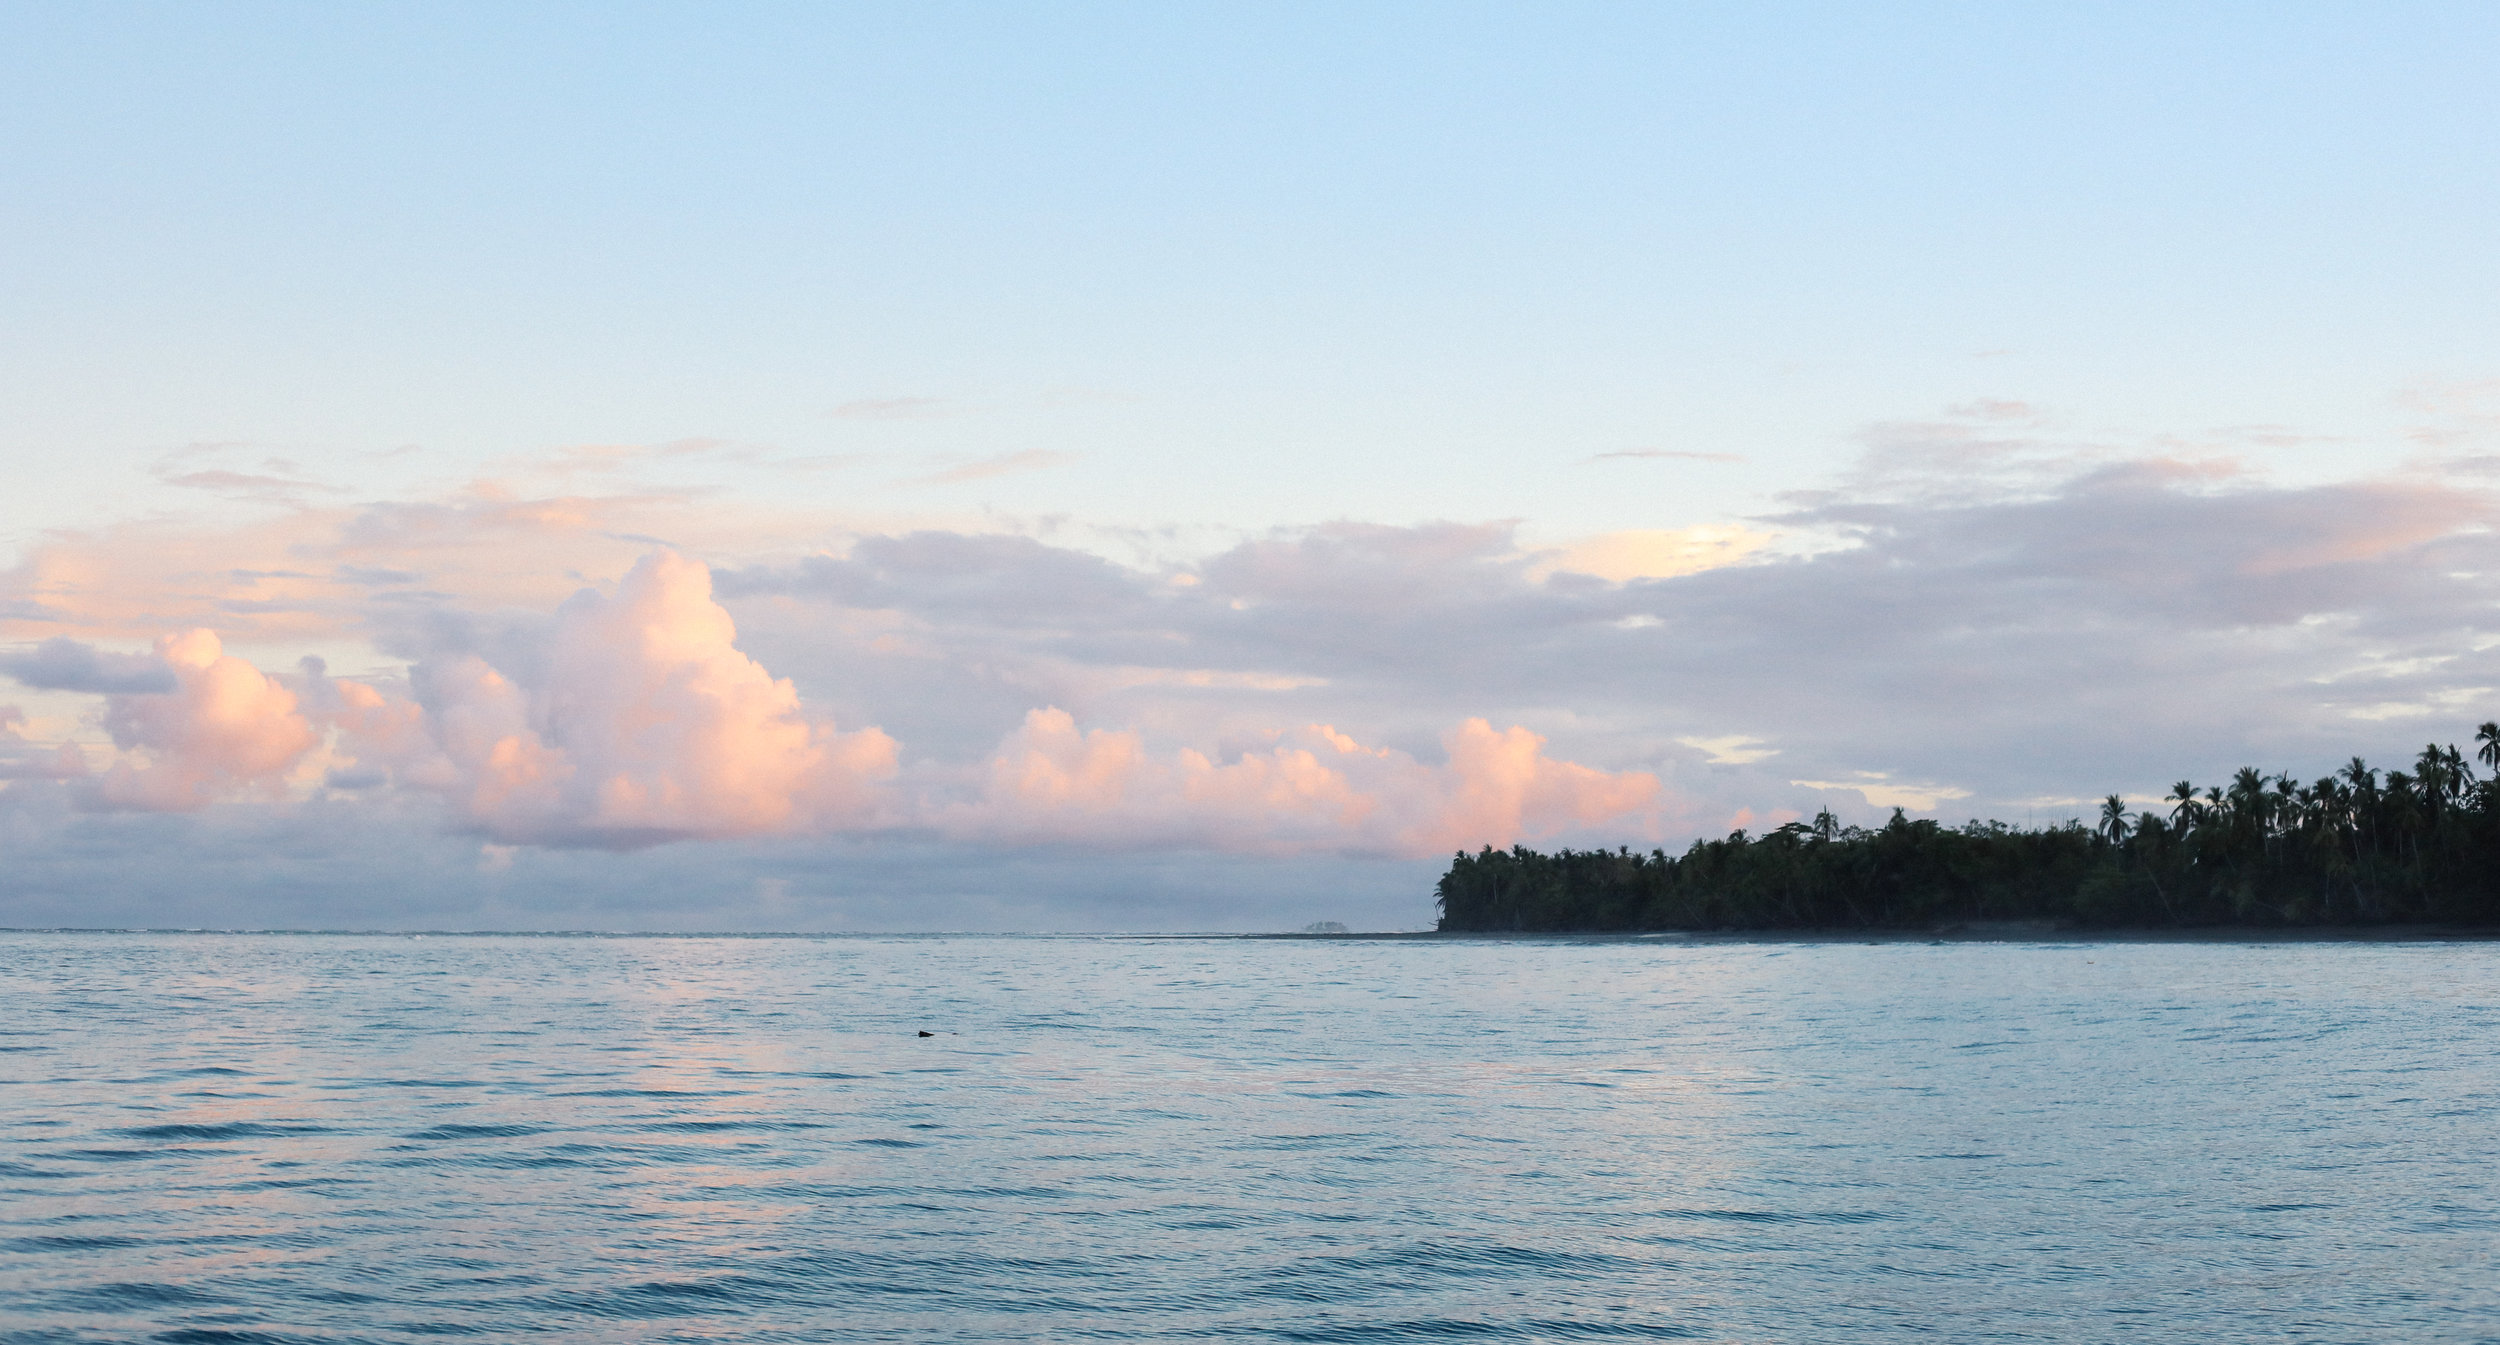 Our anchorage off Punta Balsa, where we'd wait for sunrise to head into Puerto Armuelles and to check into Panama.